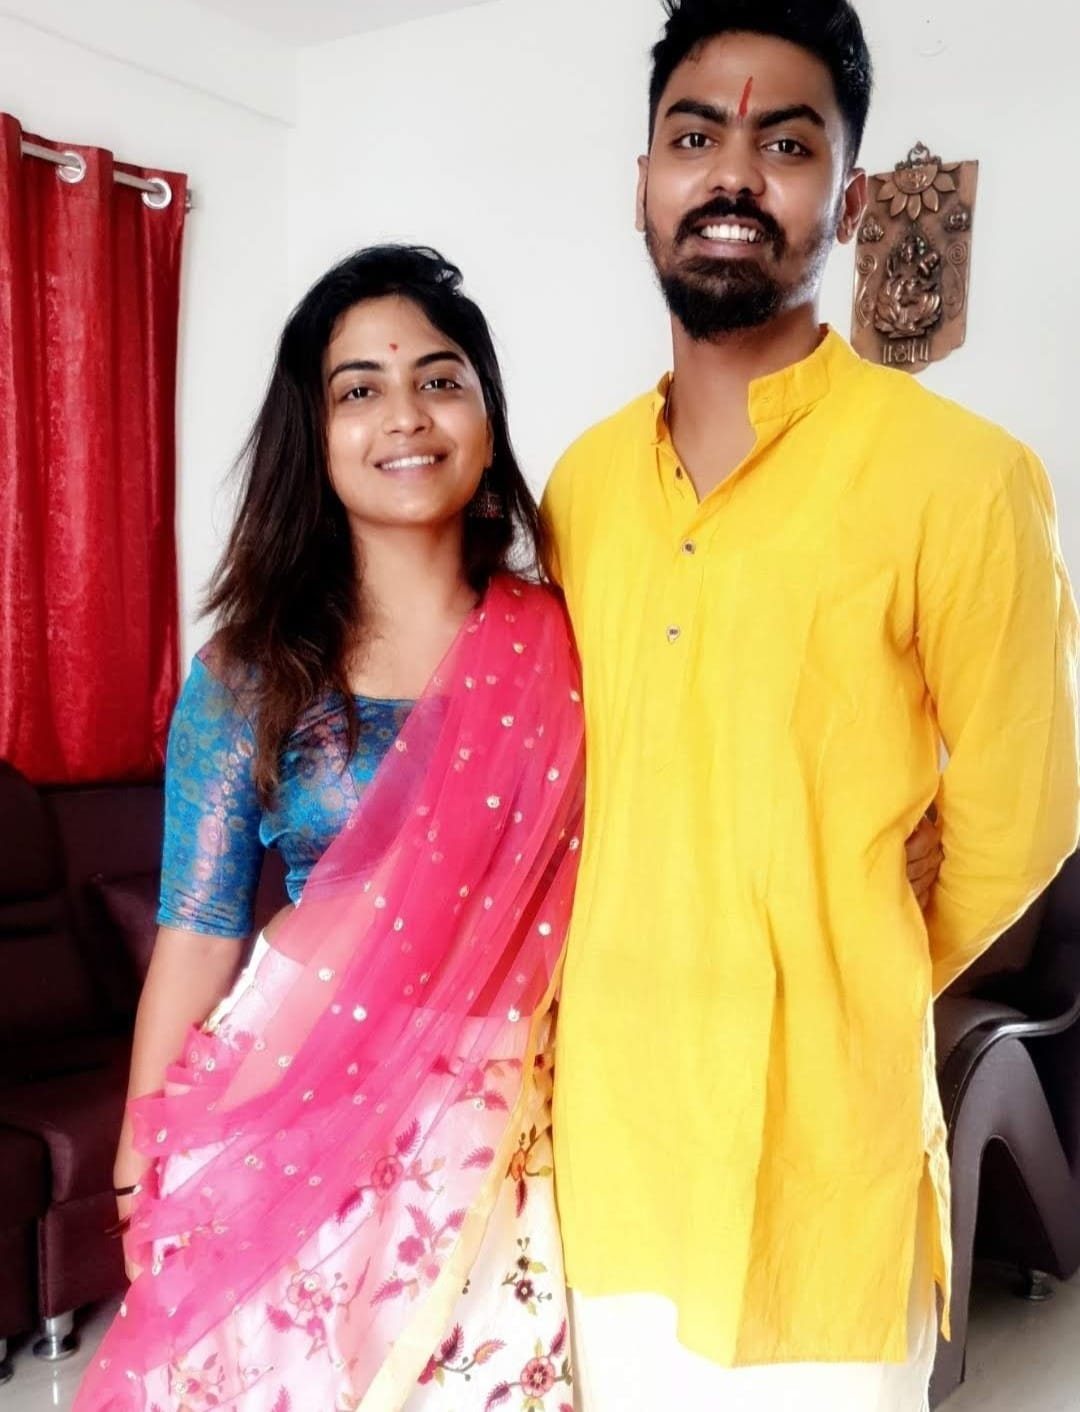 alekhya harika and her brother